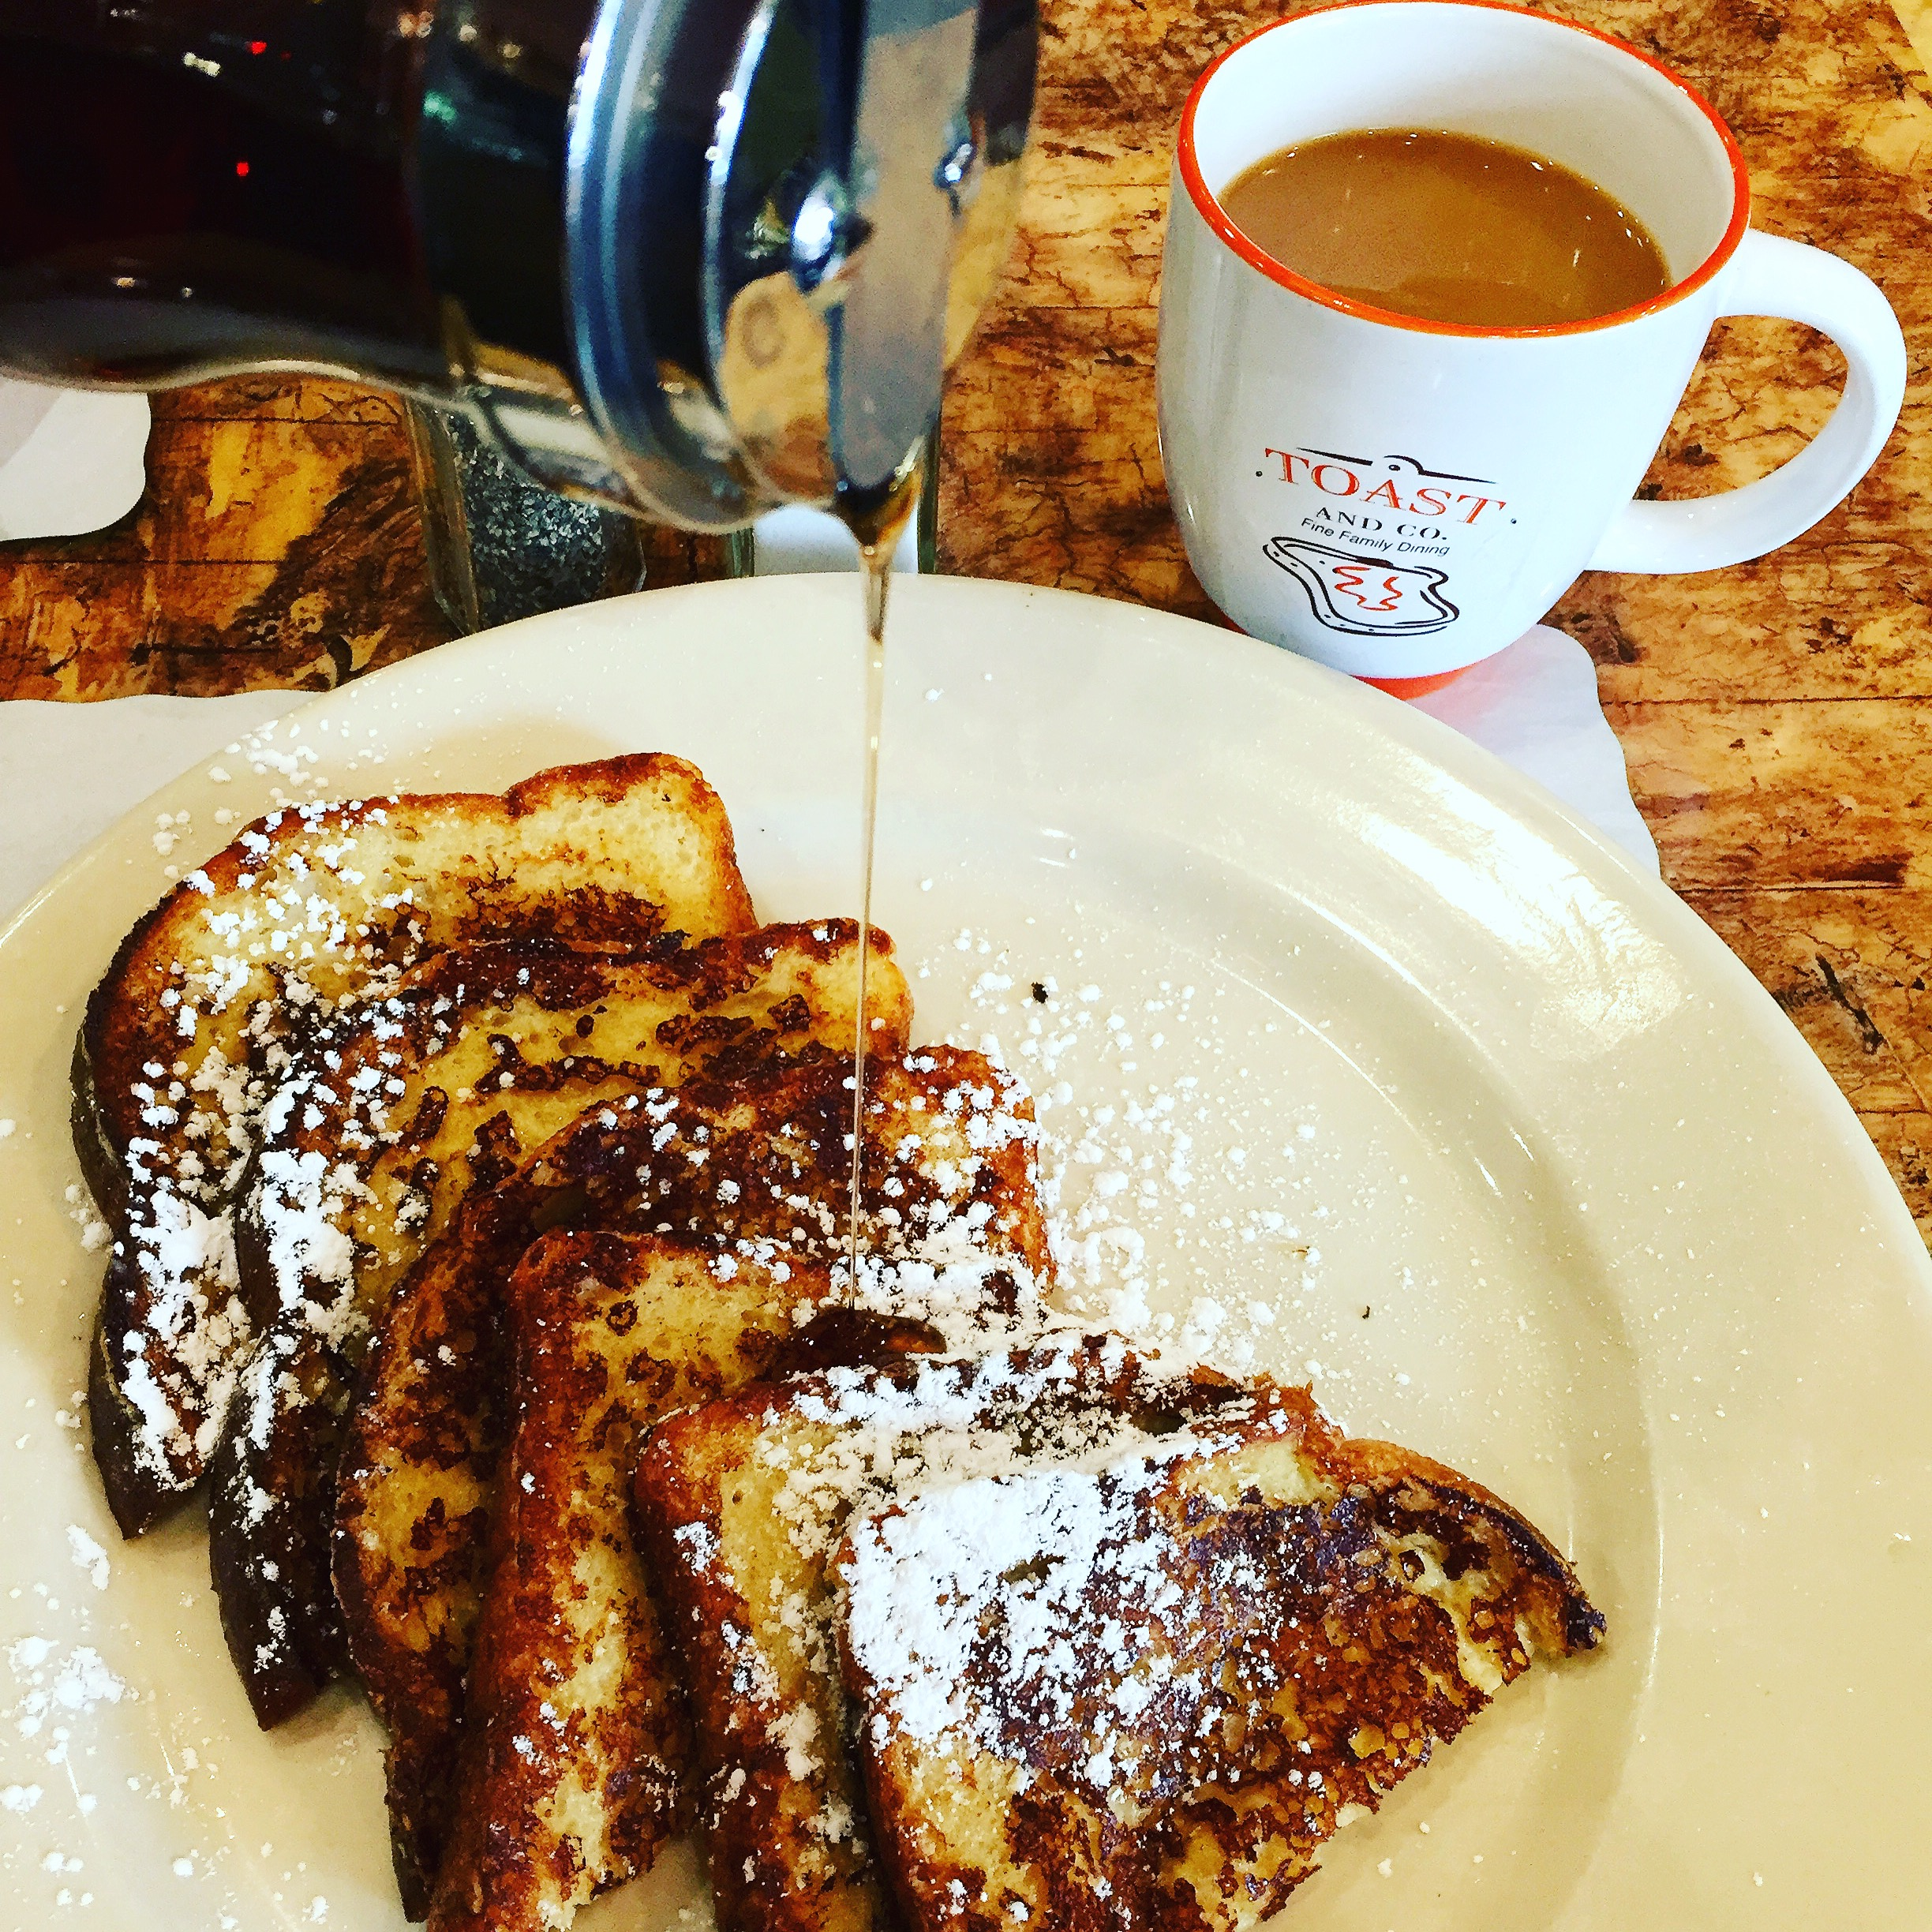 French Toast at Toast and Co.